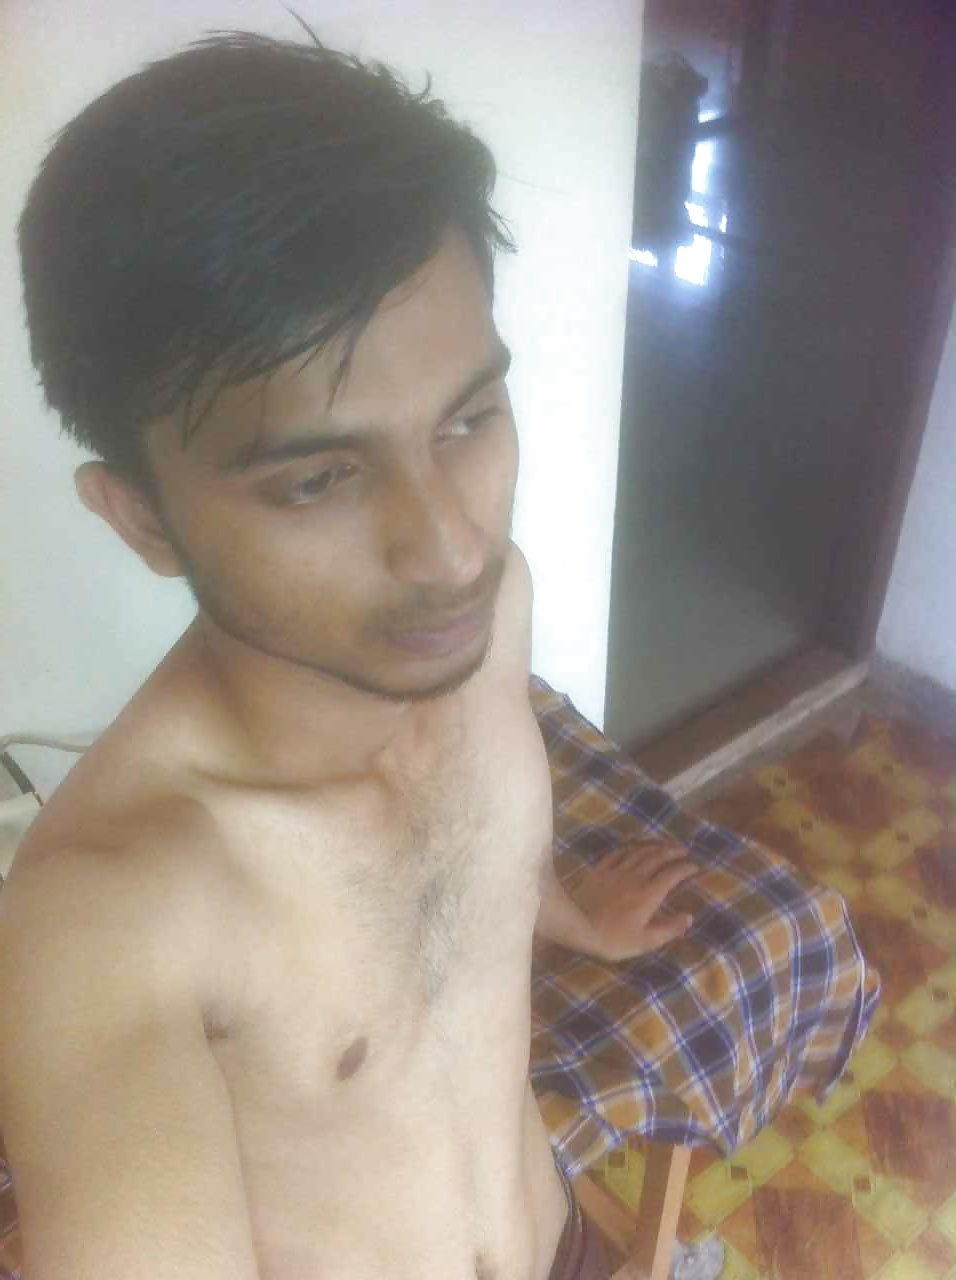 REYNA: Indian Desi Boy Men Masturbation